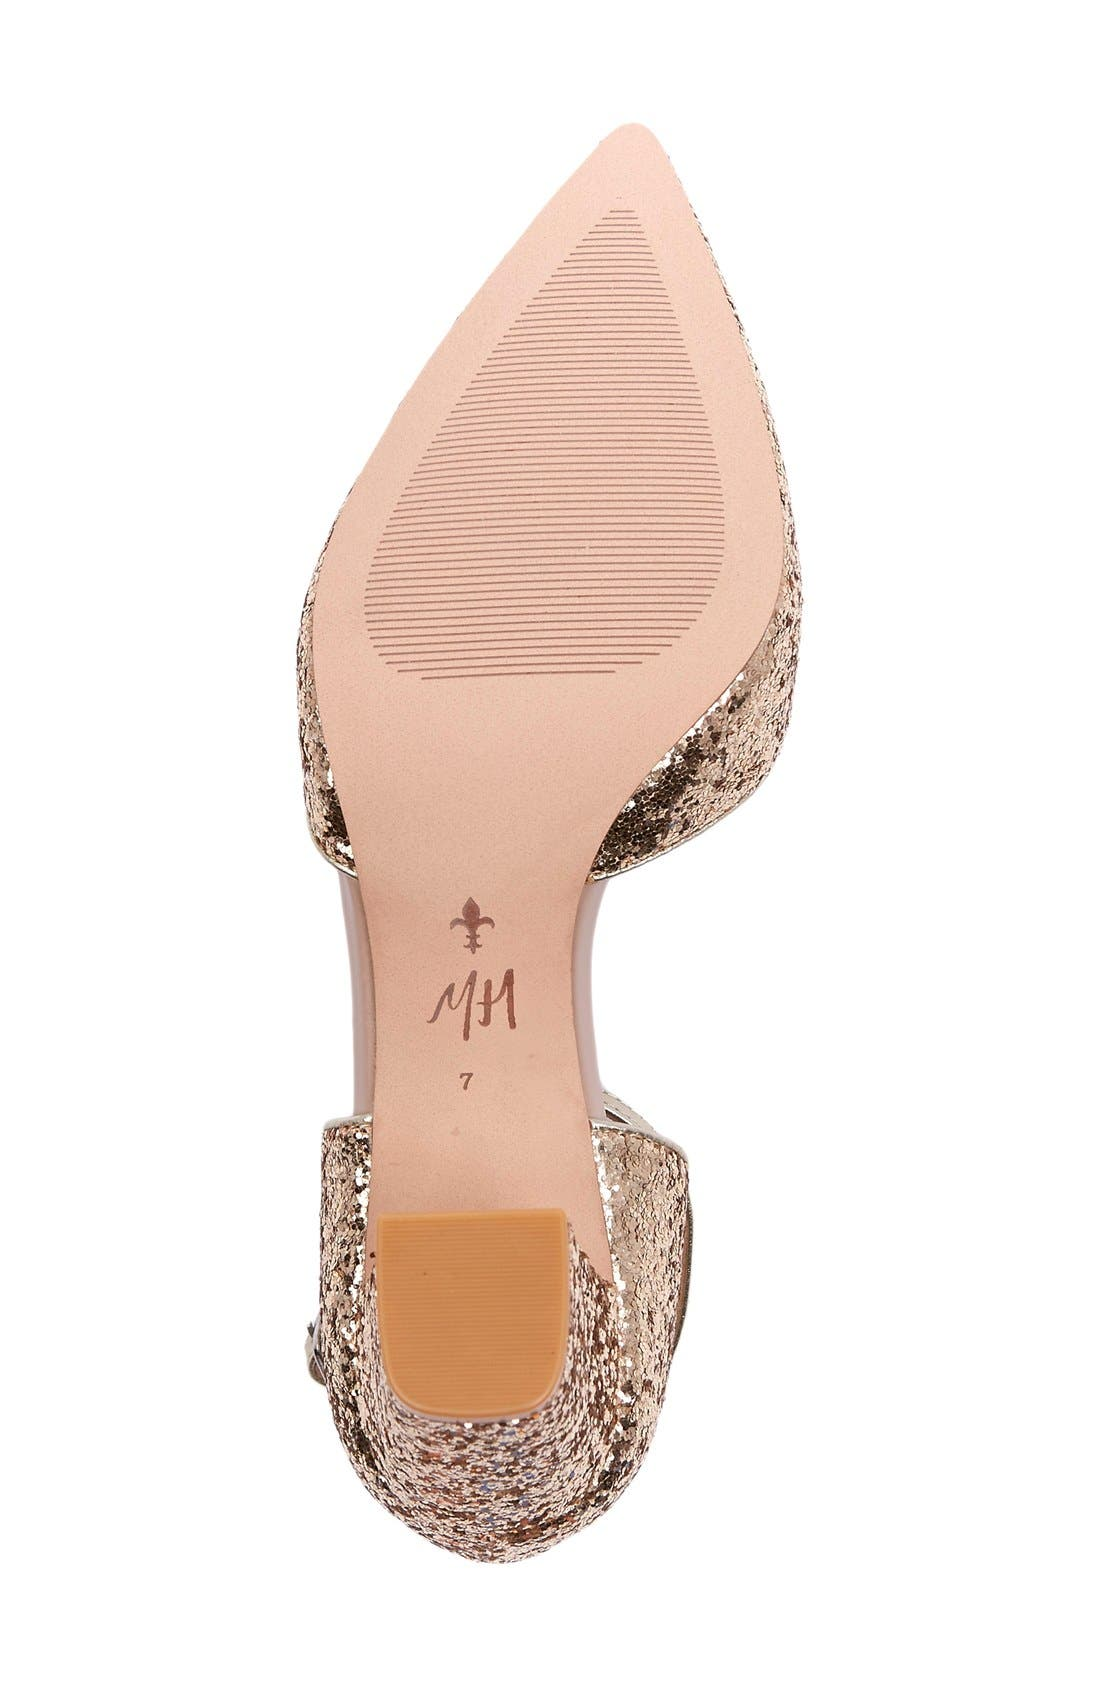 x Megan Hess Fleur-de-lis Collection Pump,                             Alternate thumbnail 4, color,                             Gold Sparkle